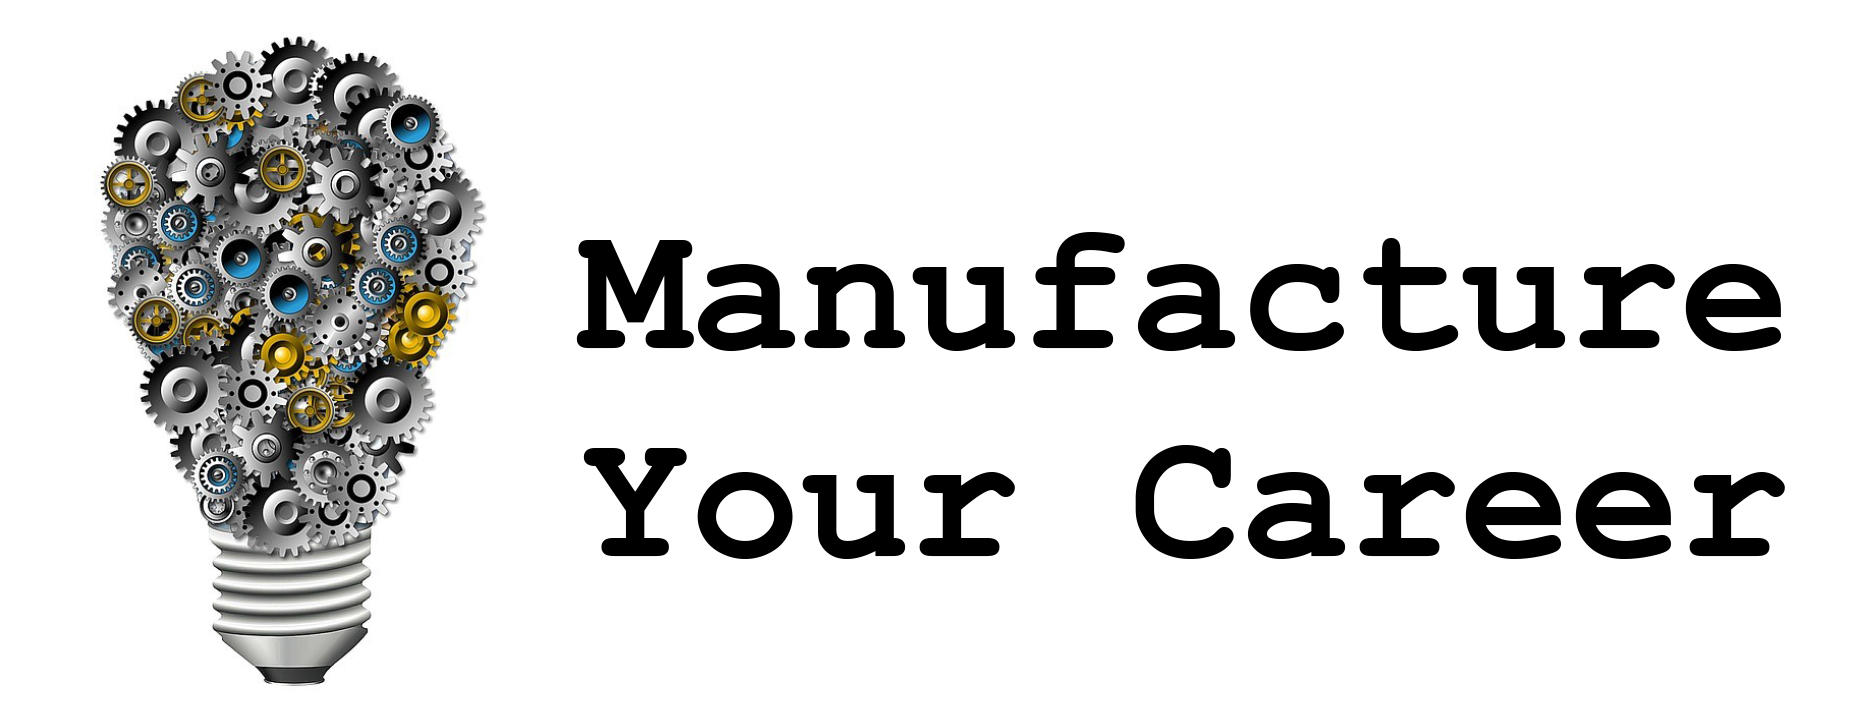 Fall 2018 Manufacture Your Career Events